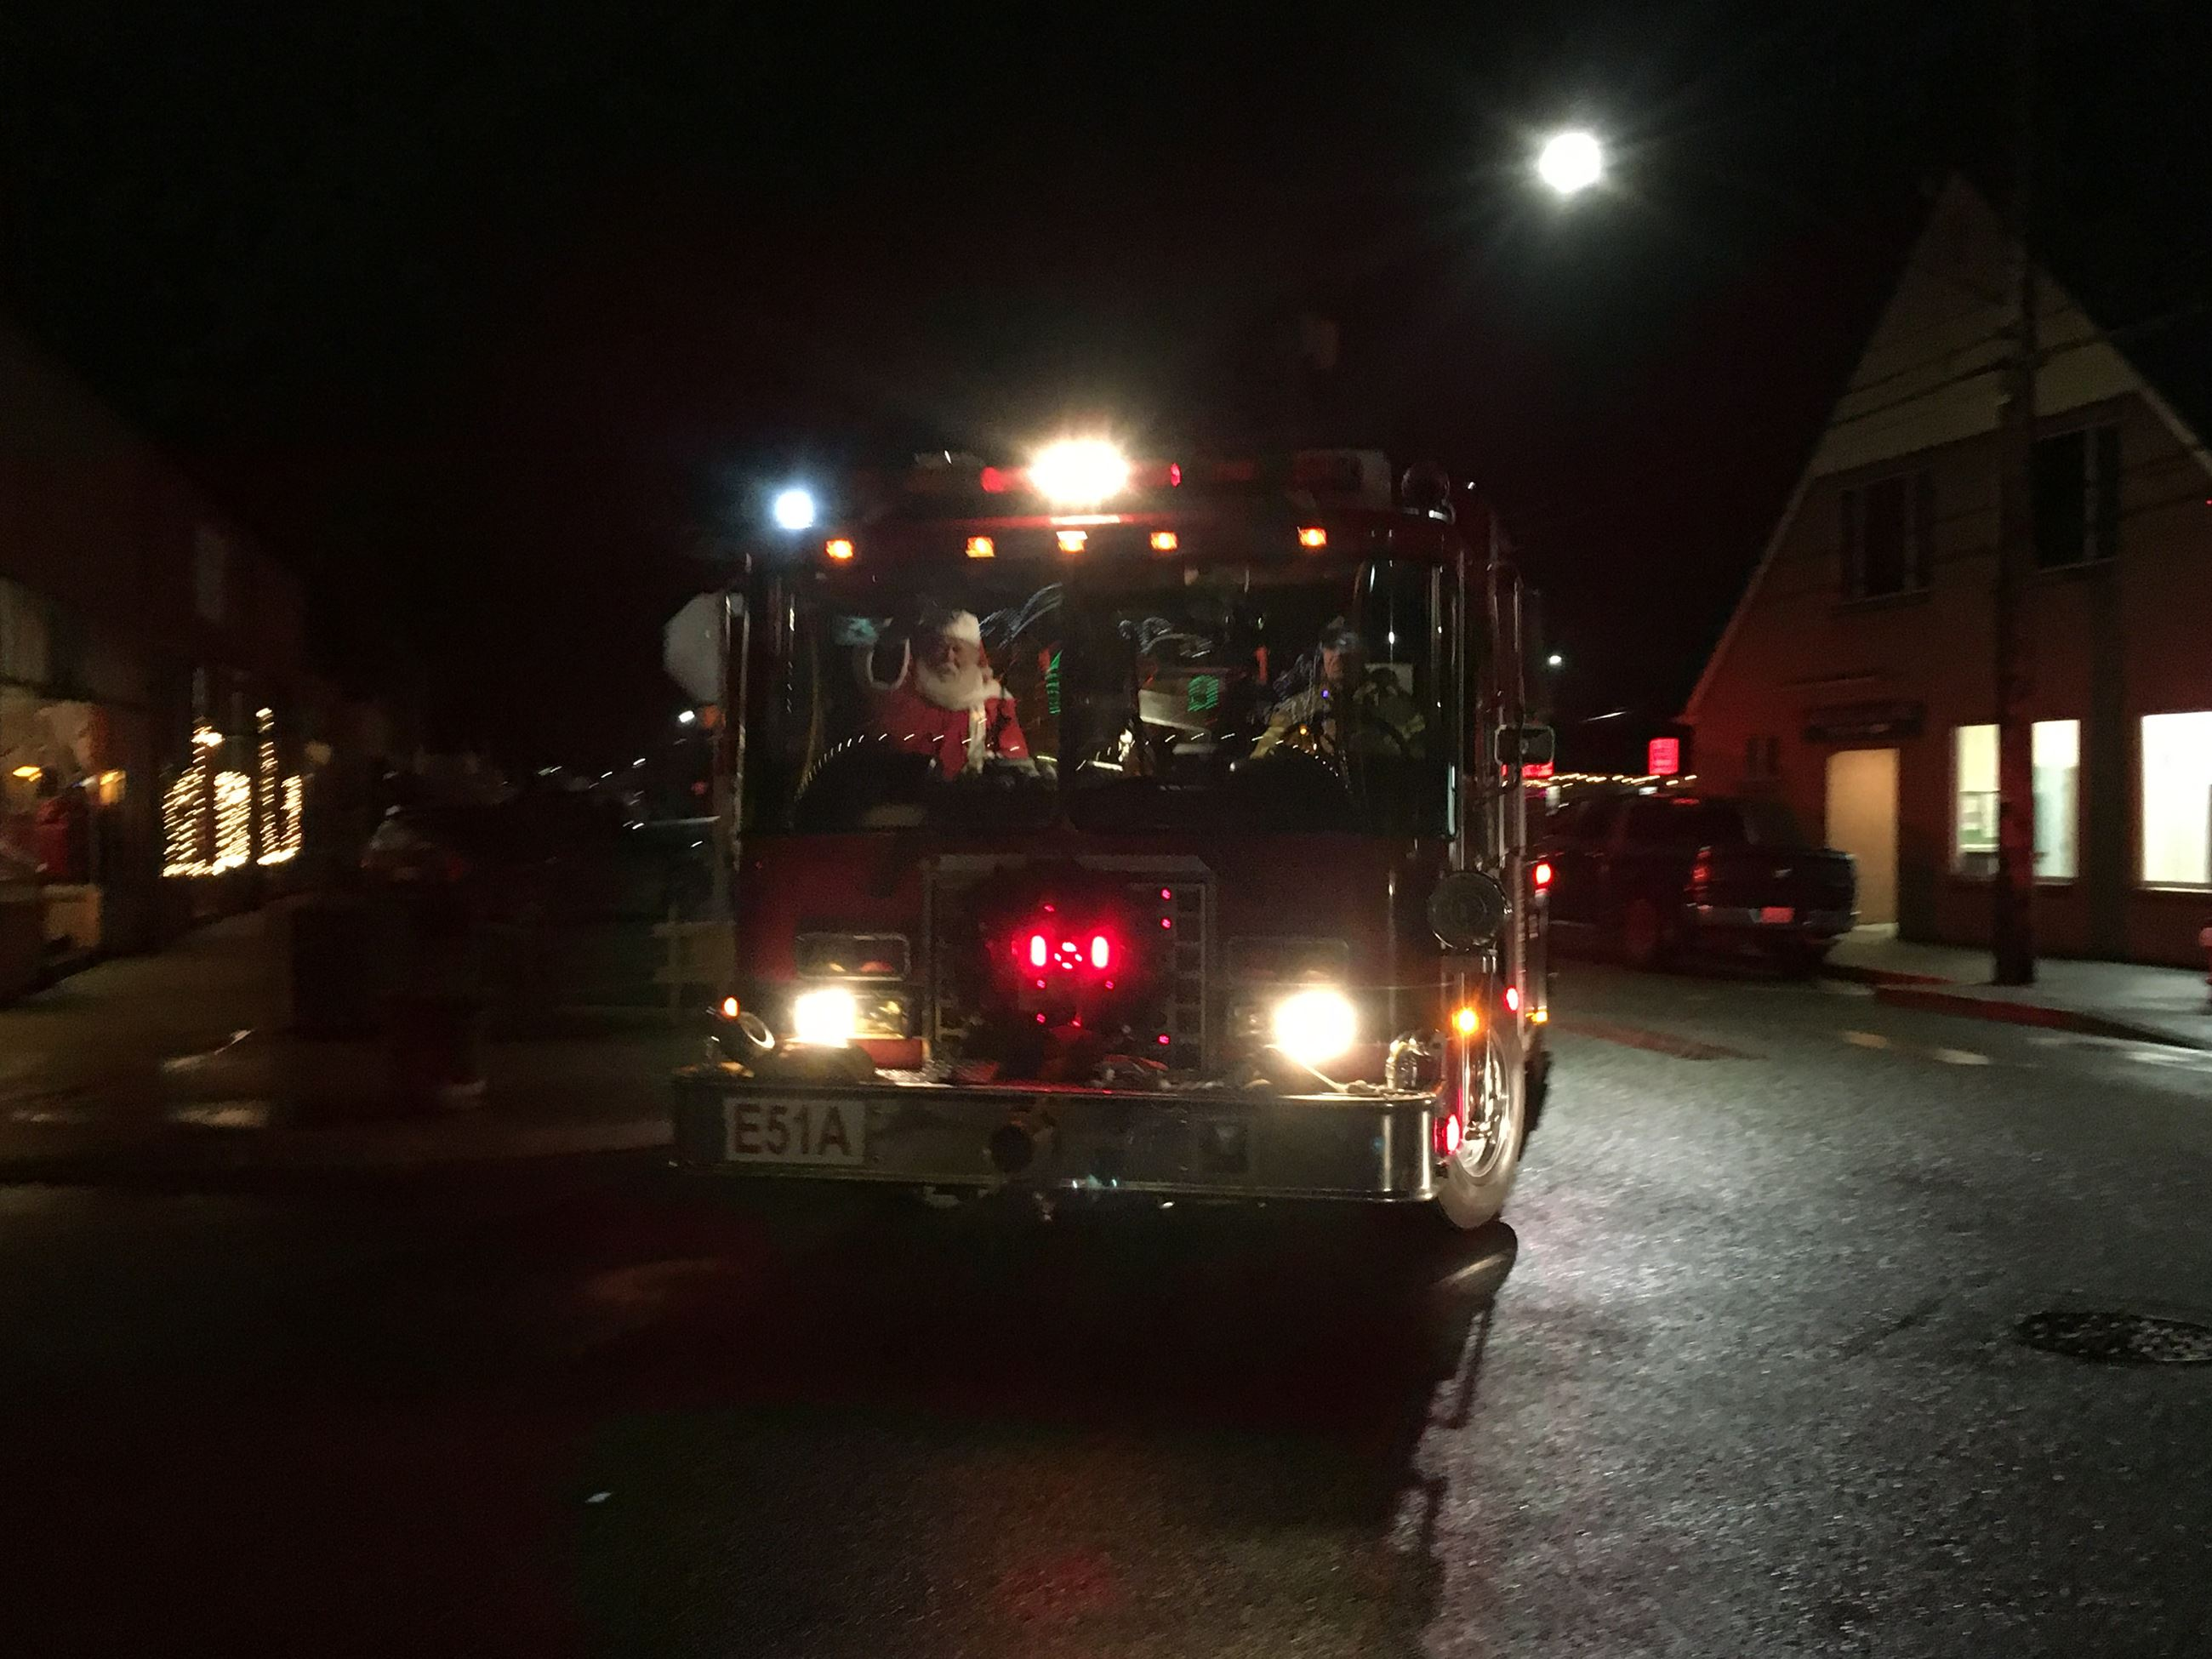 Lighted FireTruck with Santa